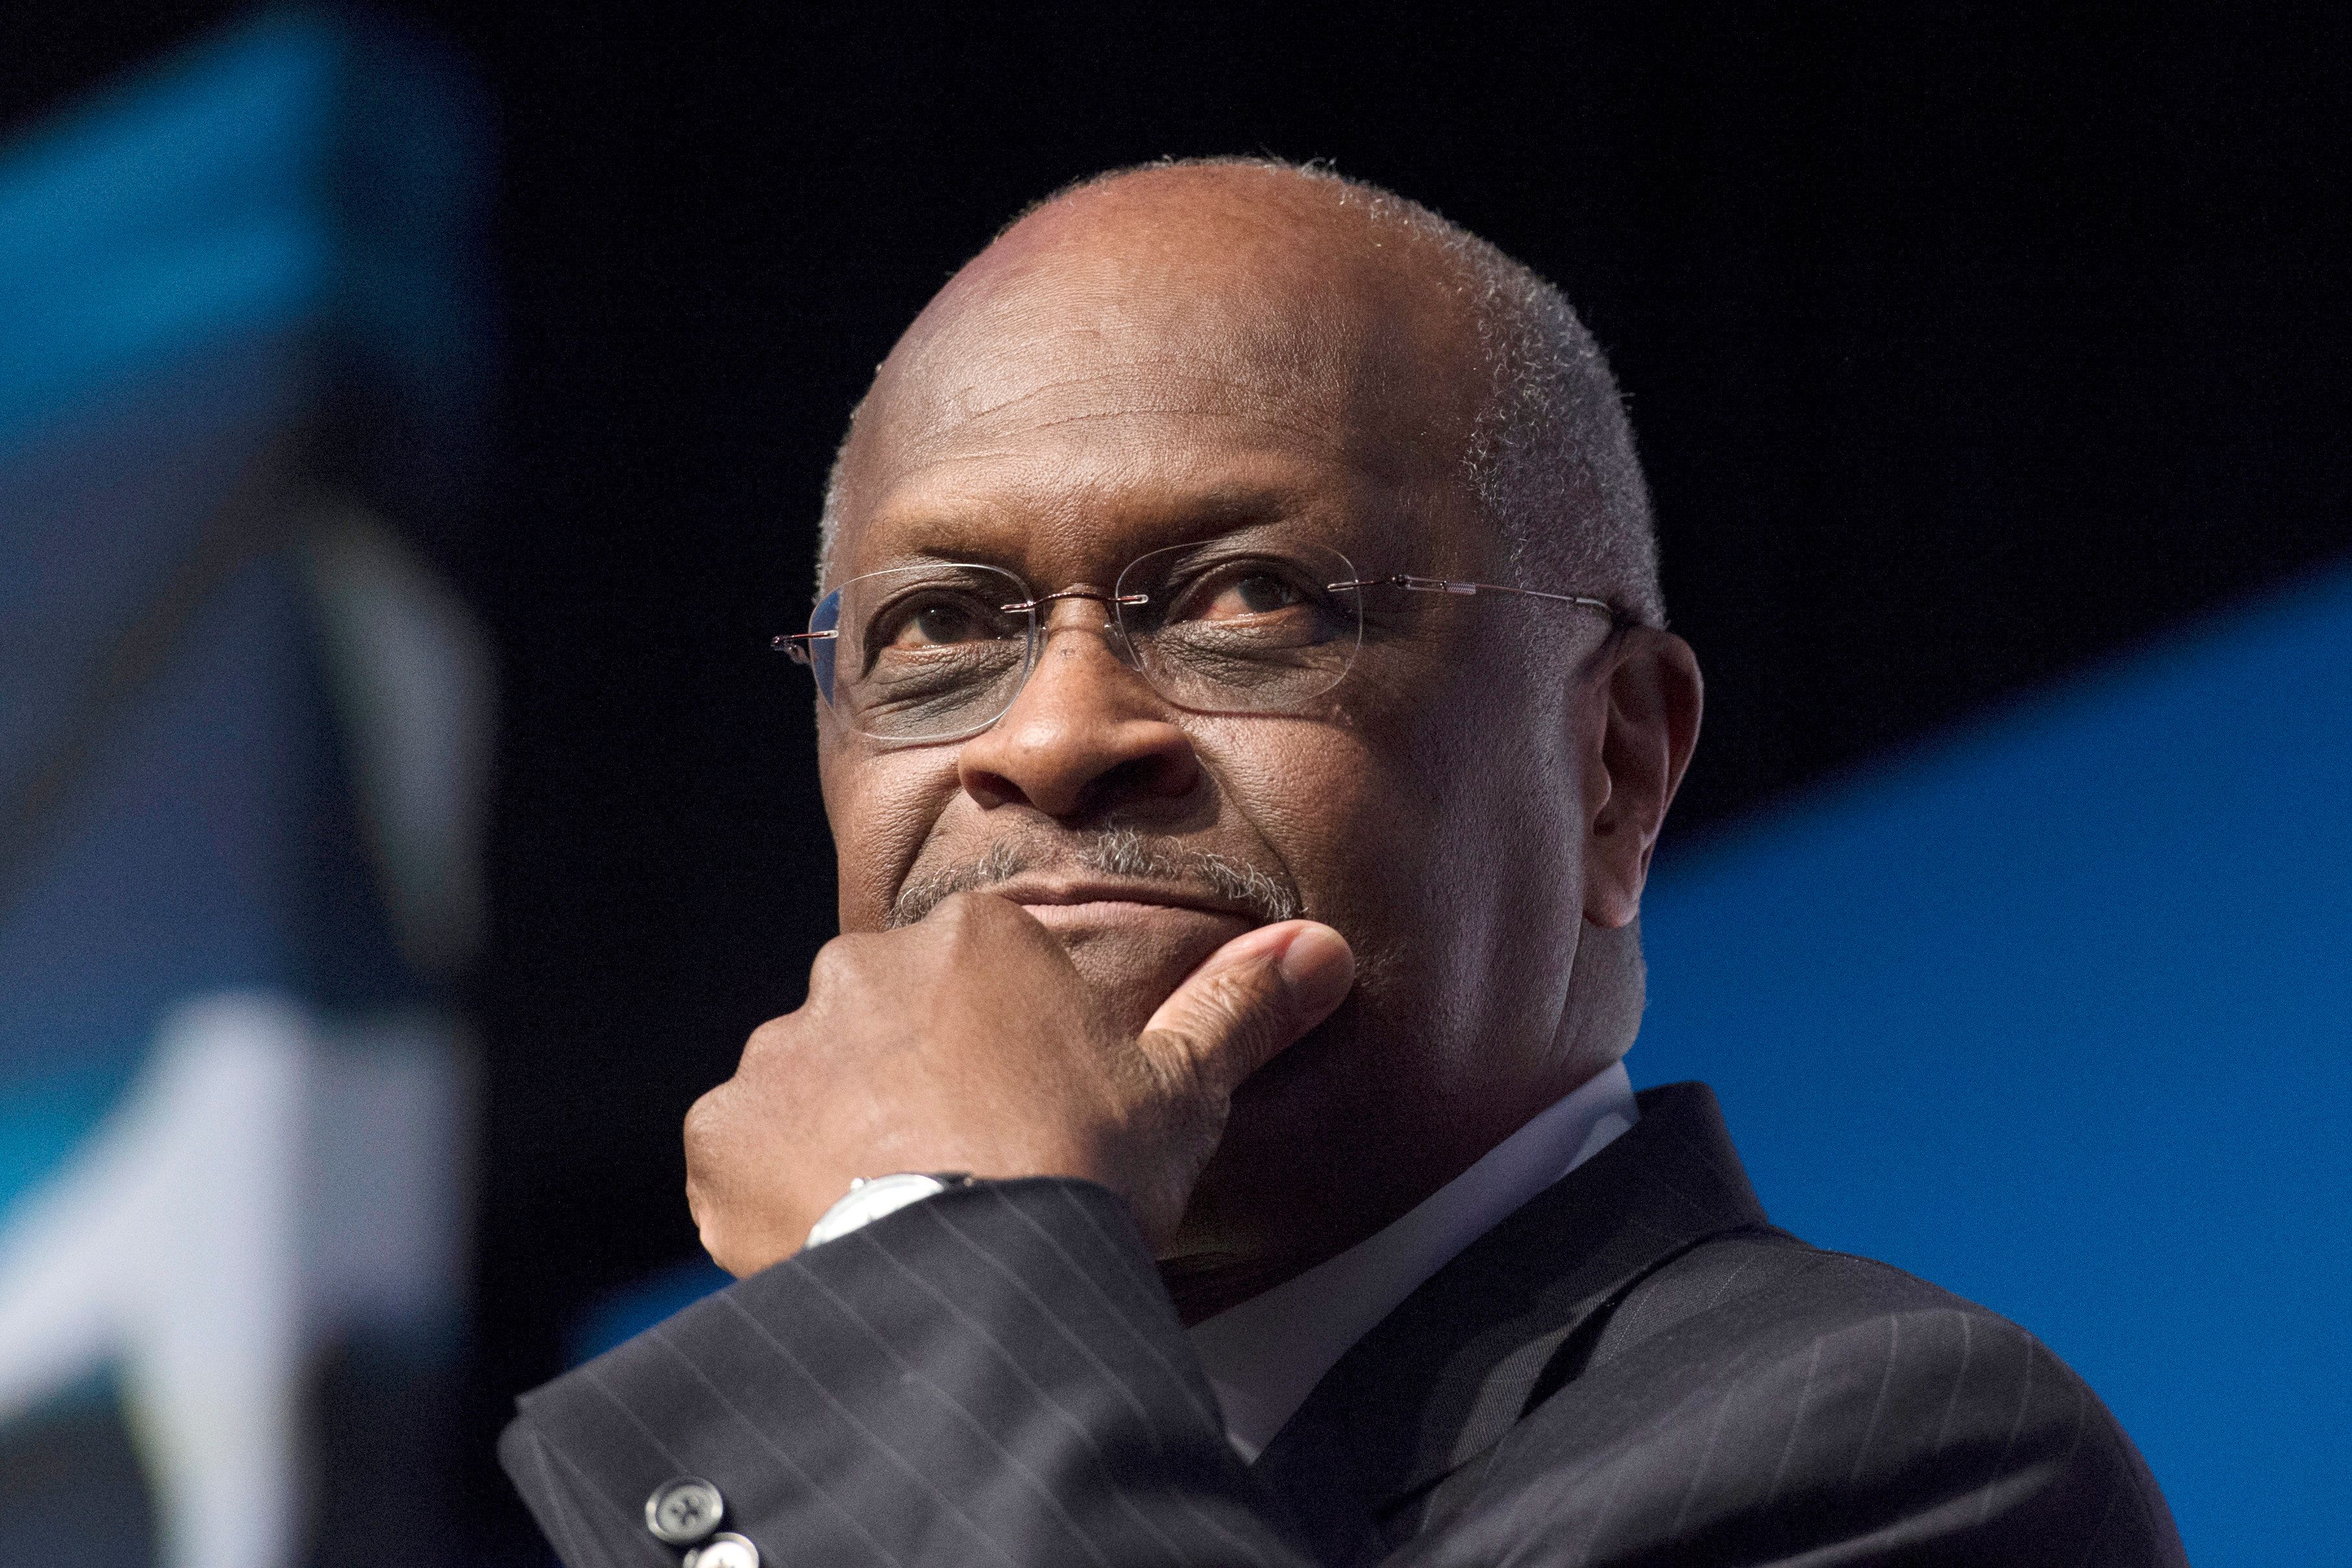 FILE - In this June 20, 2014 file photo, Herman Cain, CEO, The New Voice, speaks during Faith and Freedom Coalition's Road to Majority event in Washington. President Donald Trump said Thursday, April 4, 2019, he is recommending Herman Cain, a political ally and former presidential candidate, for a seat on the Federal Reserve board. (AP Photo/Molly Riley, File)